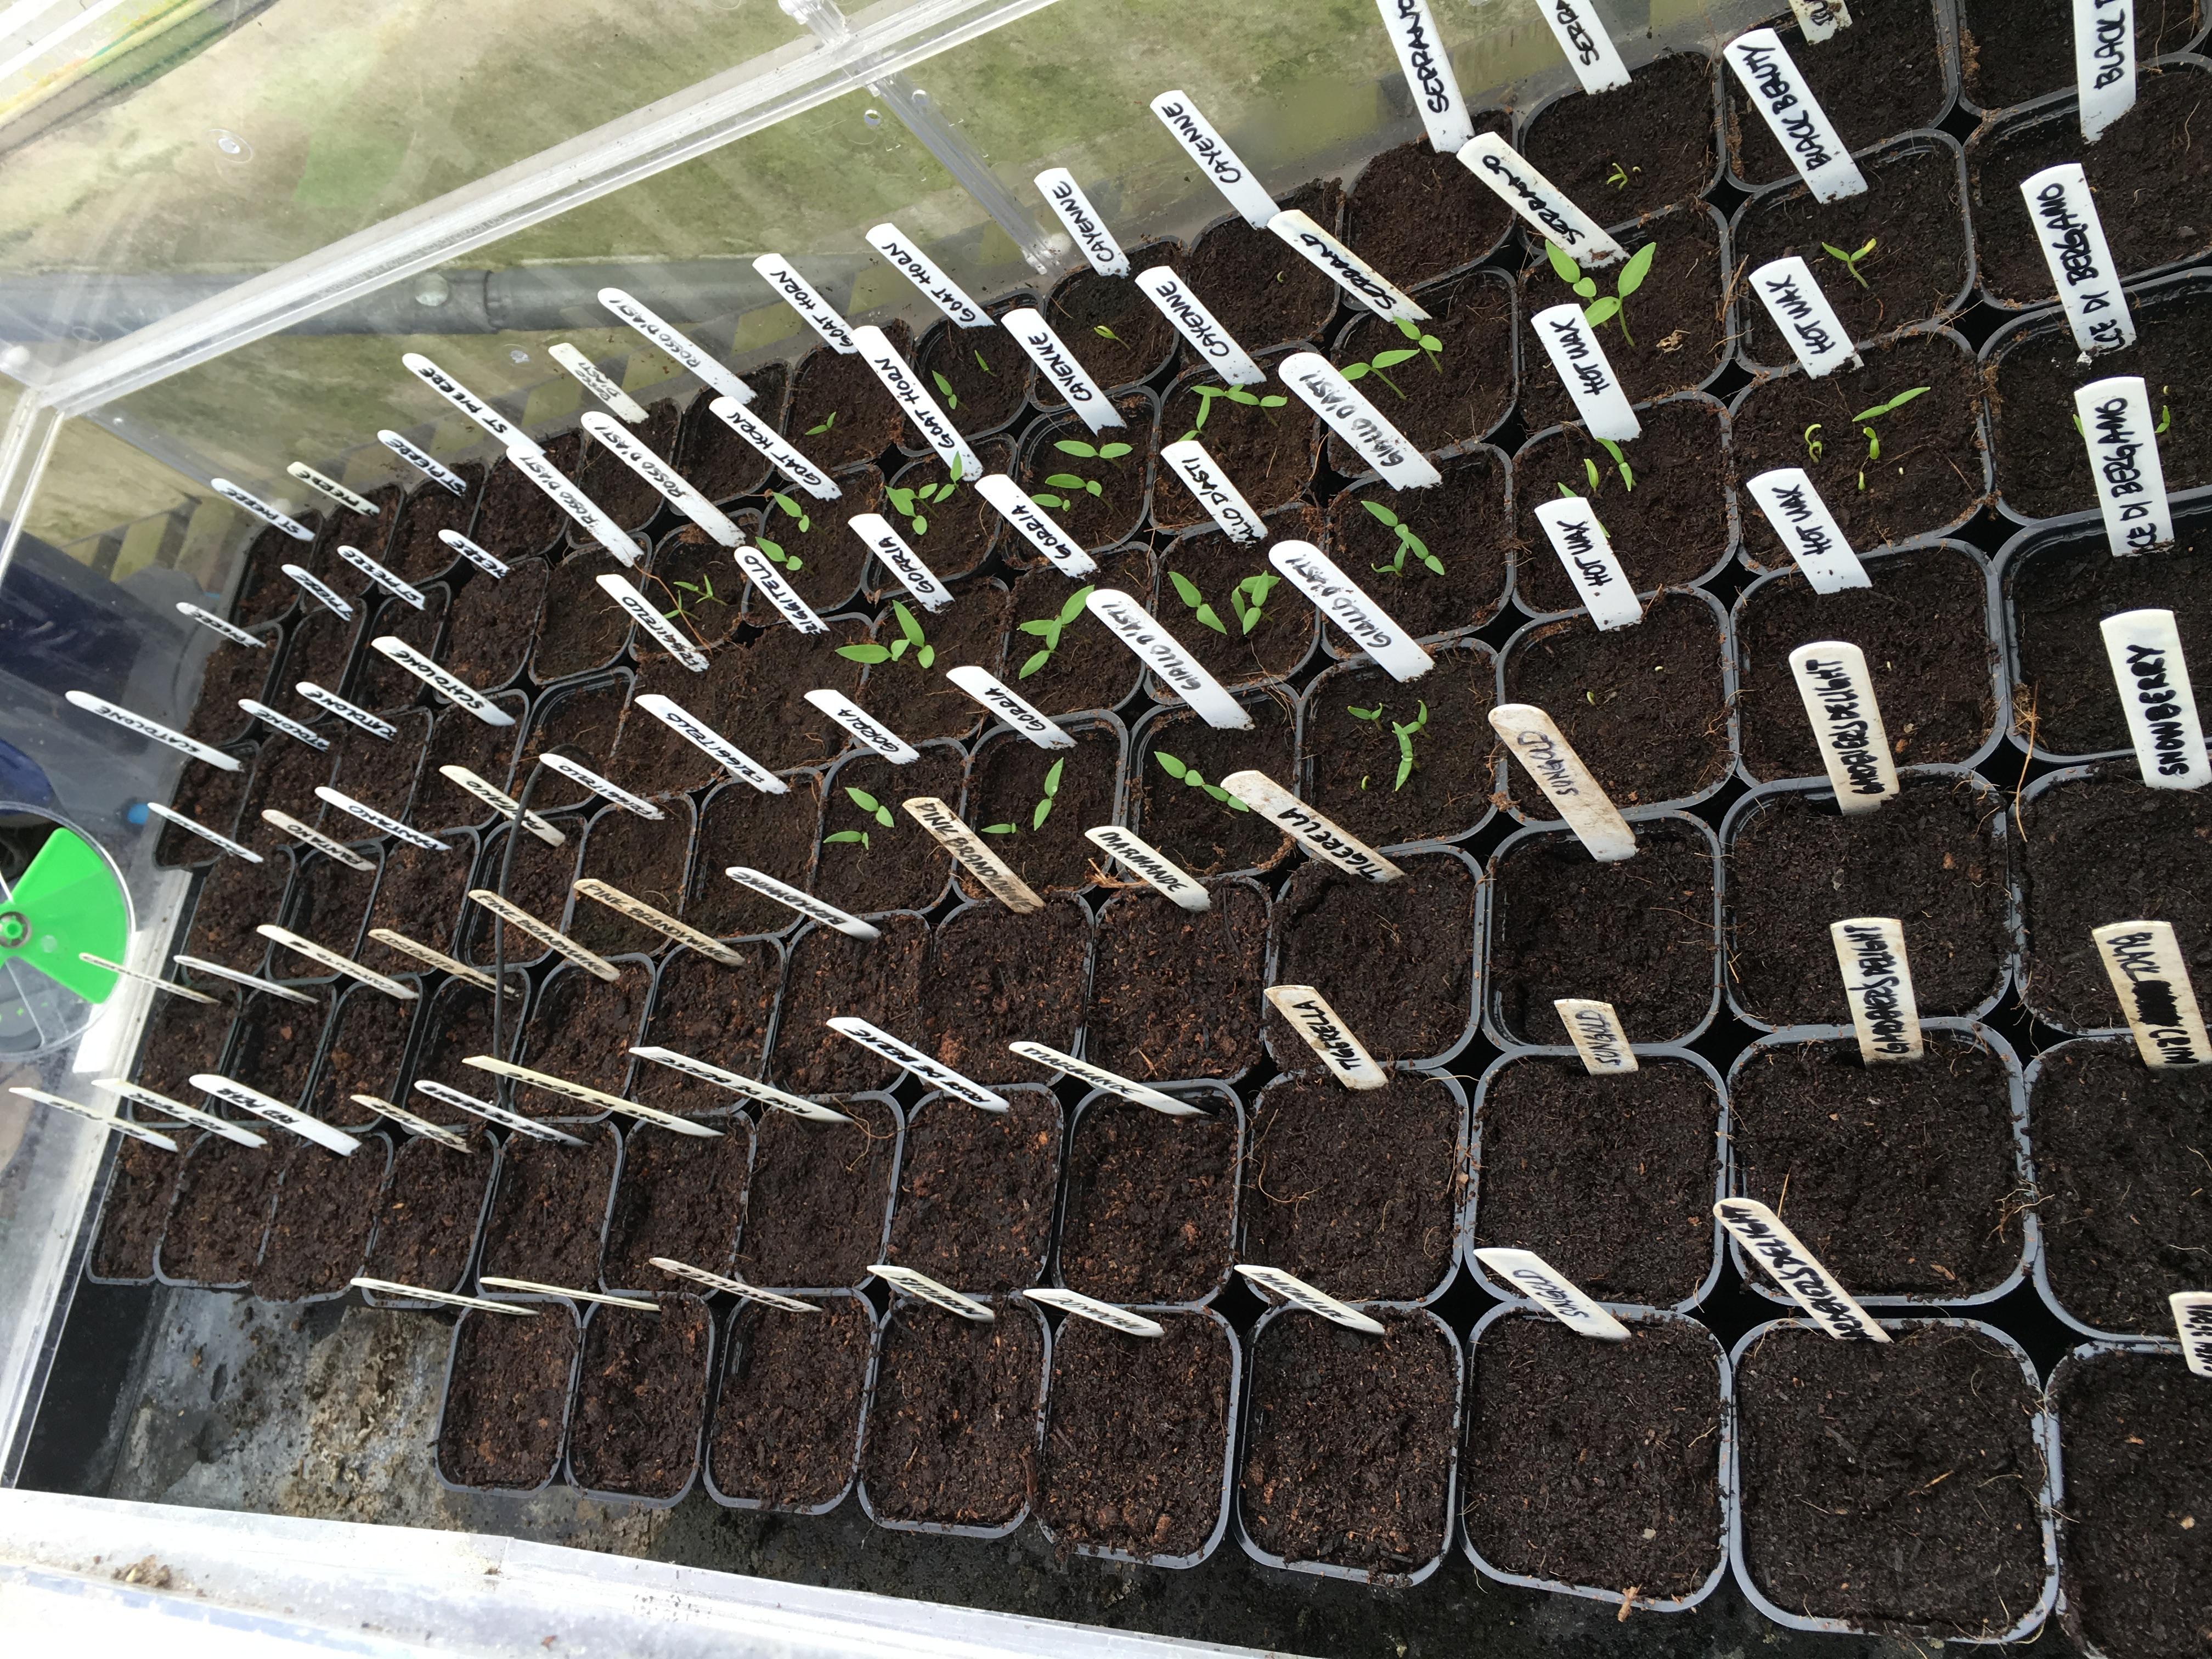 Tomatoes placed in the propagator should germinate in one week or so; some of the chilli seeds have germinated already